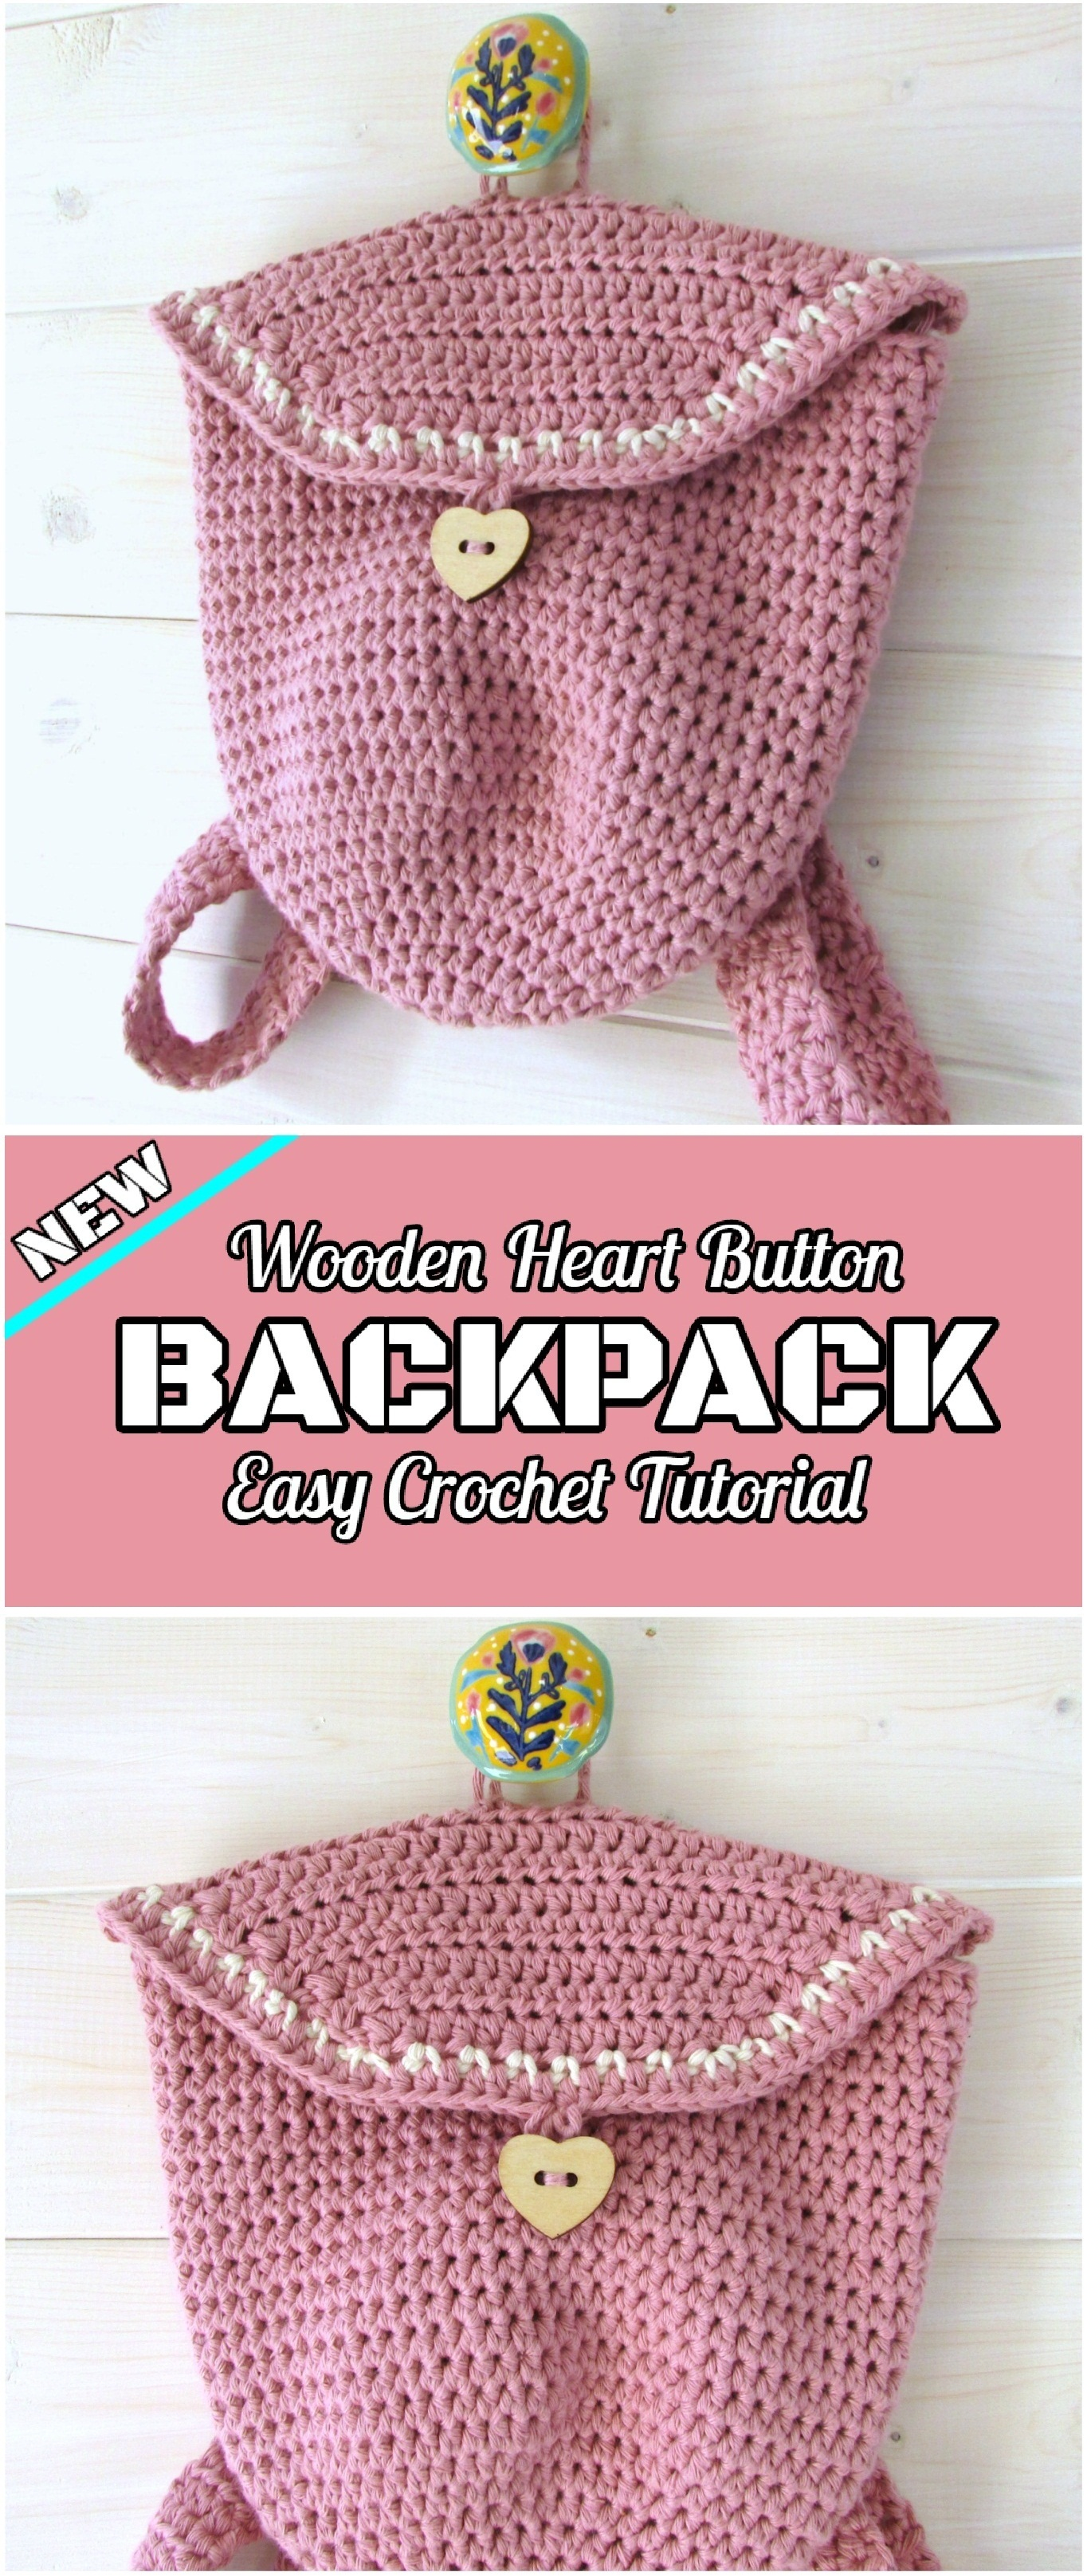 Backpack With Heart Button Crochet Tutorial - Yarnandhooks